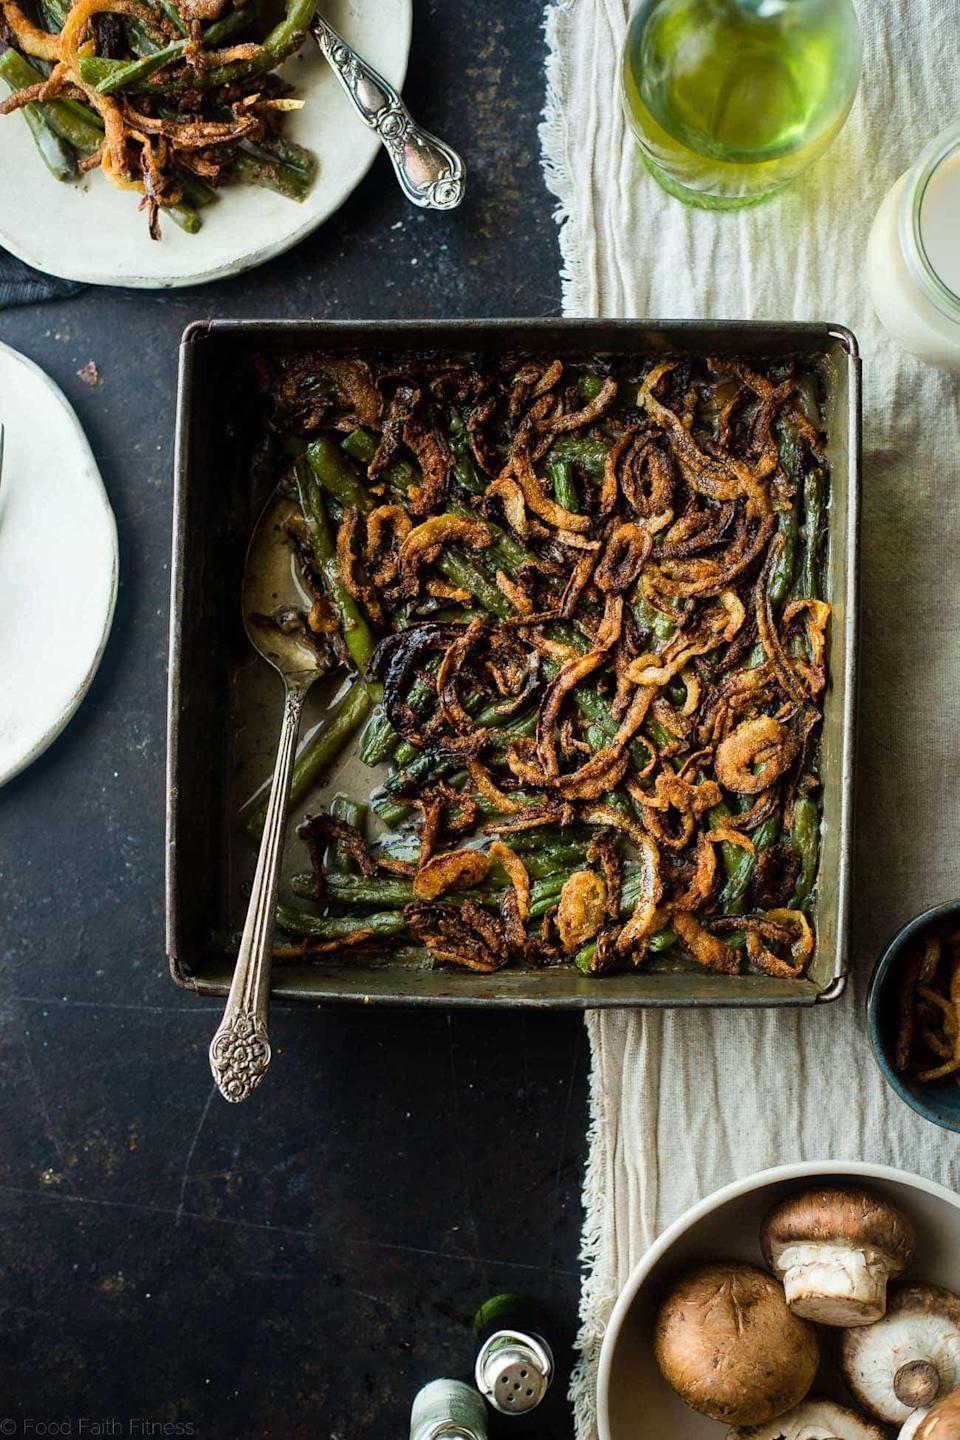 """<p>With such rich and vibrant flavors, you'll be shocked to know that this recipe is dairy-free, vegan, gluten-free, <em>and</em> paleo friendly! You'll still be getting all your favorite casserole flavors just without the not-so-good-for-you ingredients. Need we say more?</p> <p><strong>Get the recipe</strong>: <a href=""""https://www.foodfaithfitness.com/healthy-vegan-green-bean-casserole/"""" class=""""link rapid-noclick-resp"""" rel=""""nofollow noopener"""" target=""""_blank"""" data-ylk=""""slk:dairy-free vegan green bean casserole"""">dairy-free vegan green bean casserole</a></p>"""